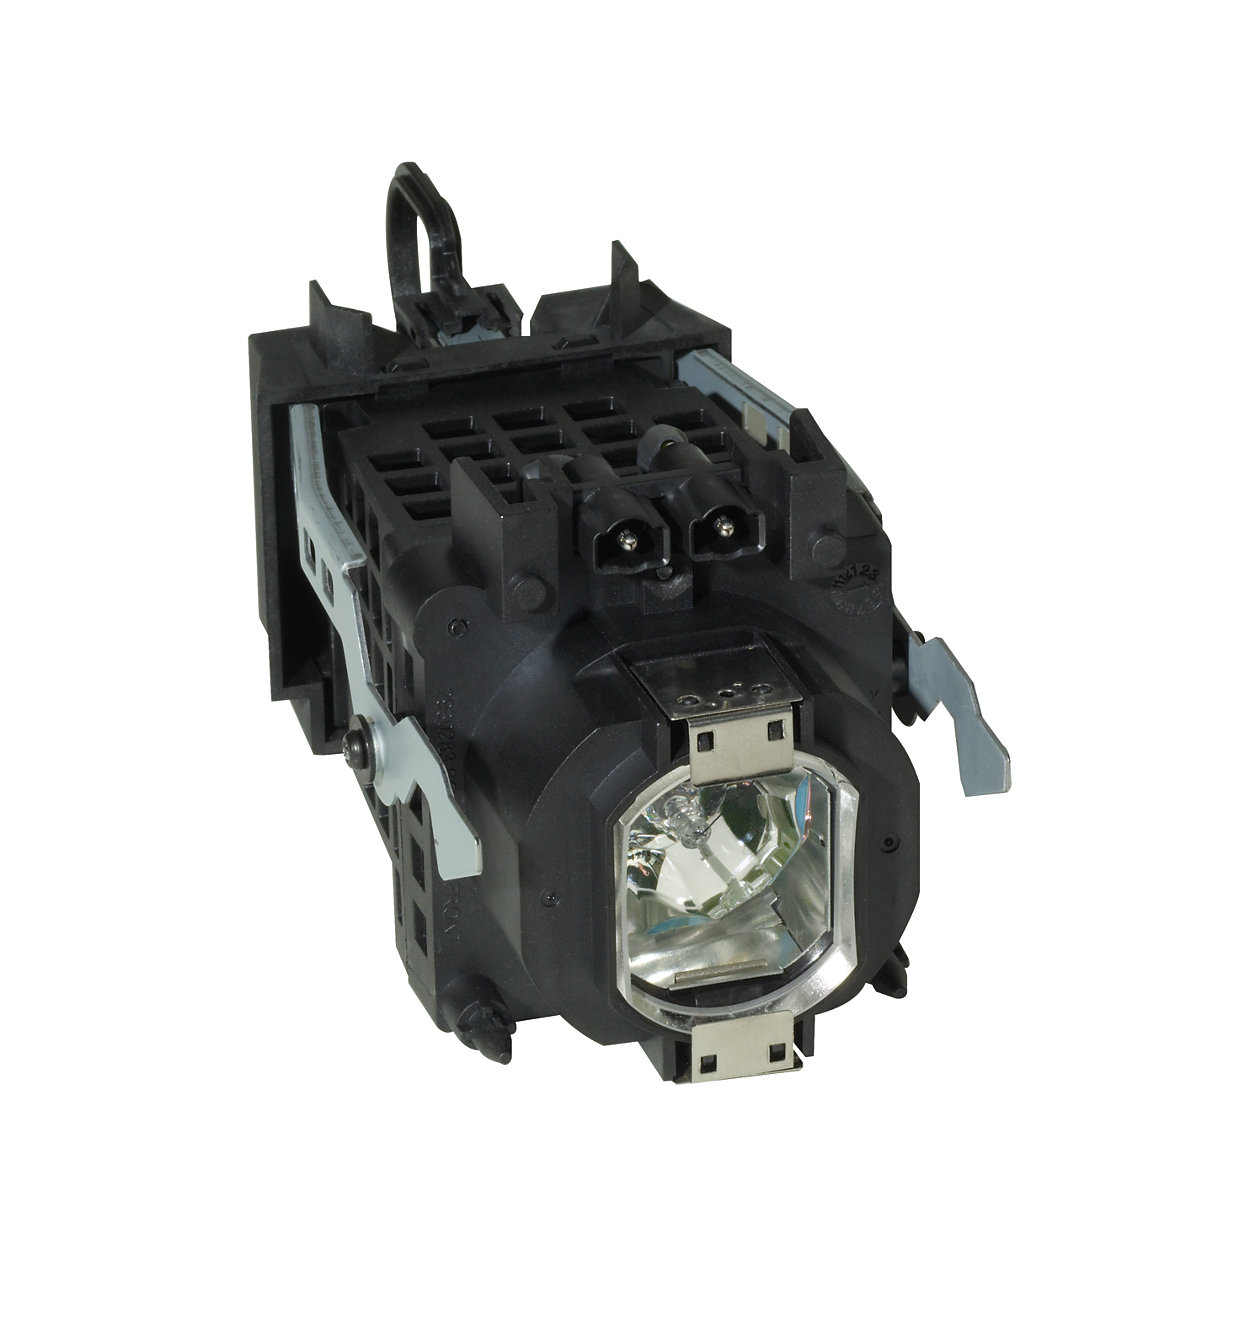 Original Replacement Modules for best quality and performance